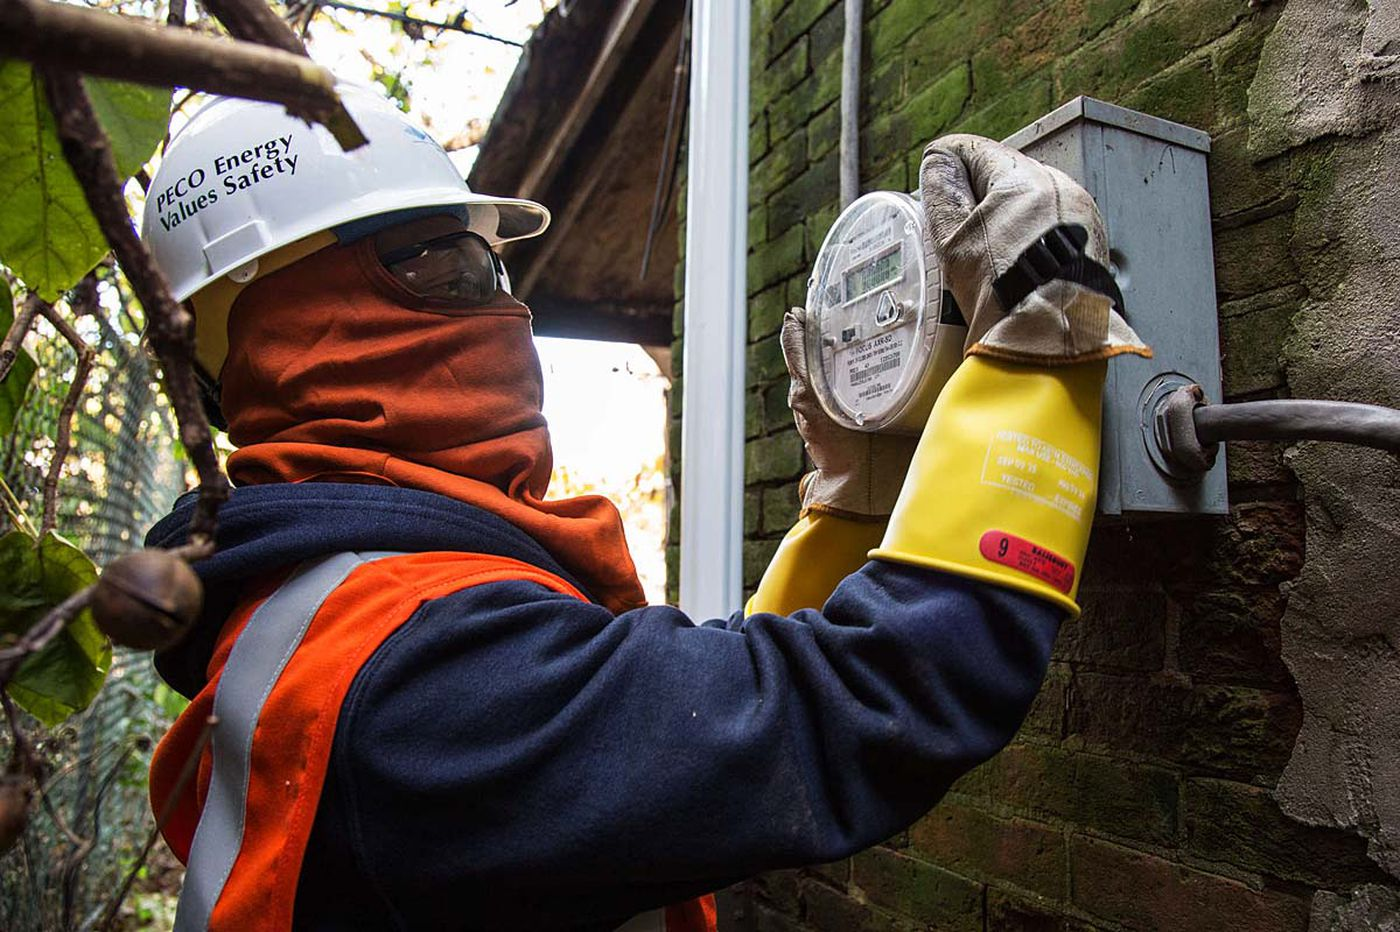 Peco smart-meter installation close to done